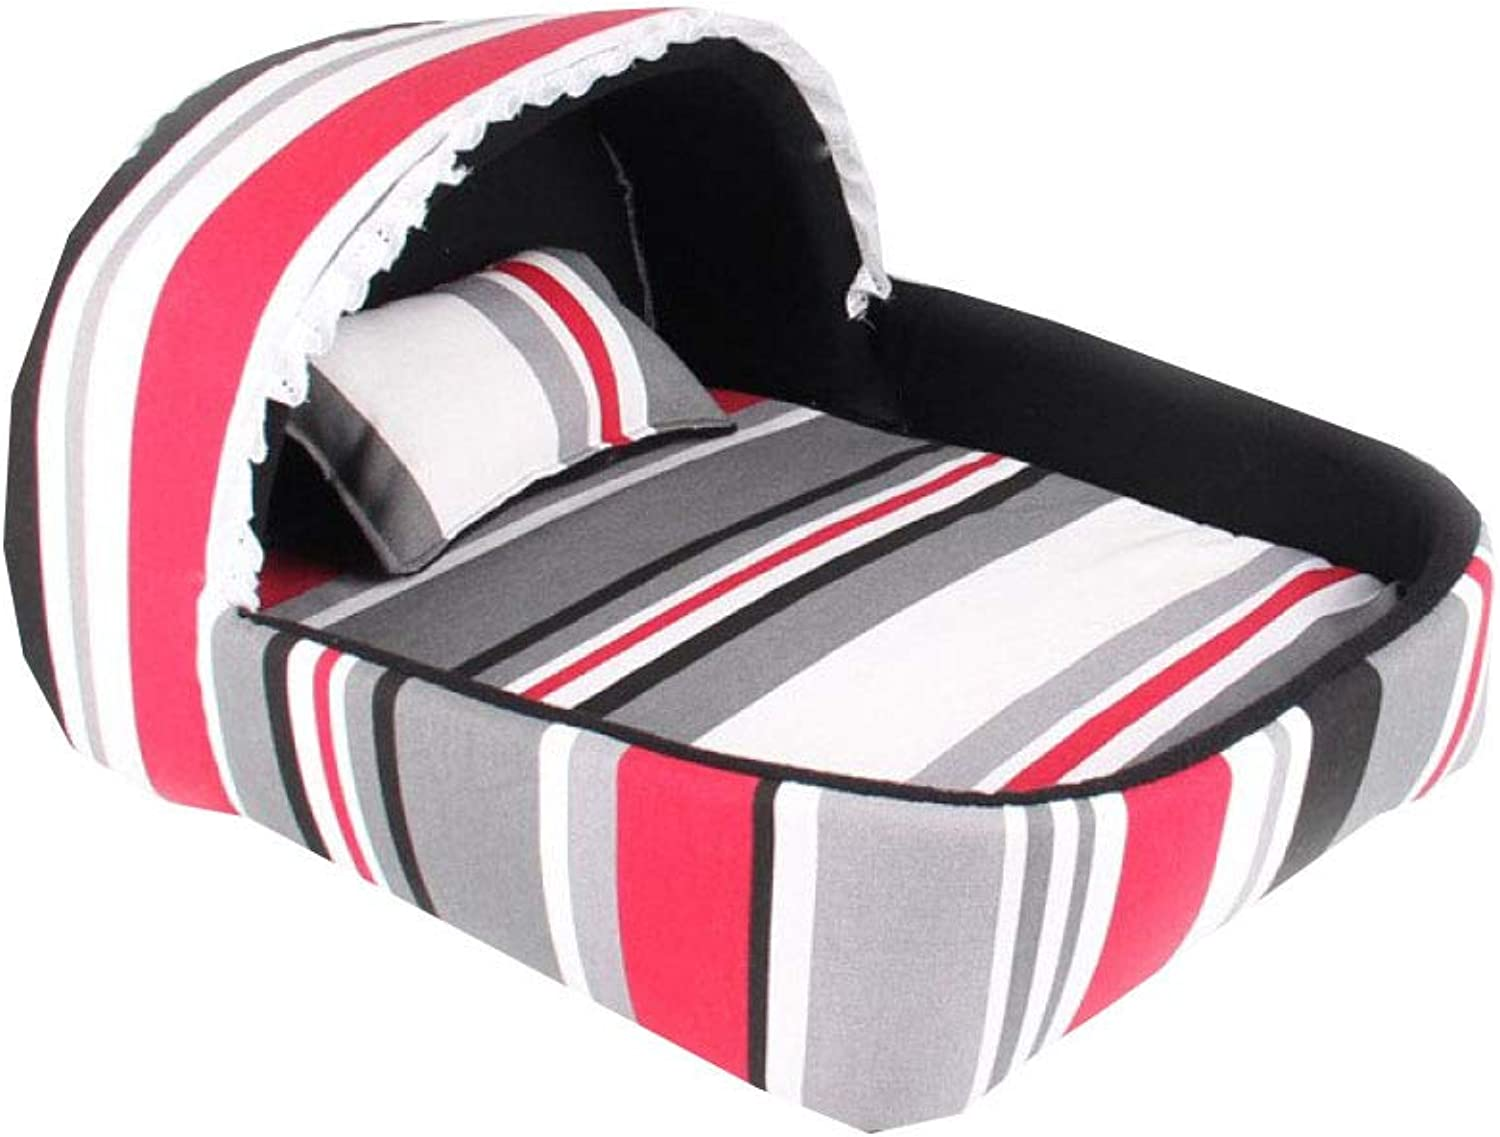 Dog beds Premium Water Resistant And Durable Fabric Washable Cover Happy Hound = Happy Home,Red50  40  25cm